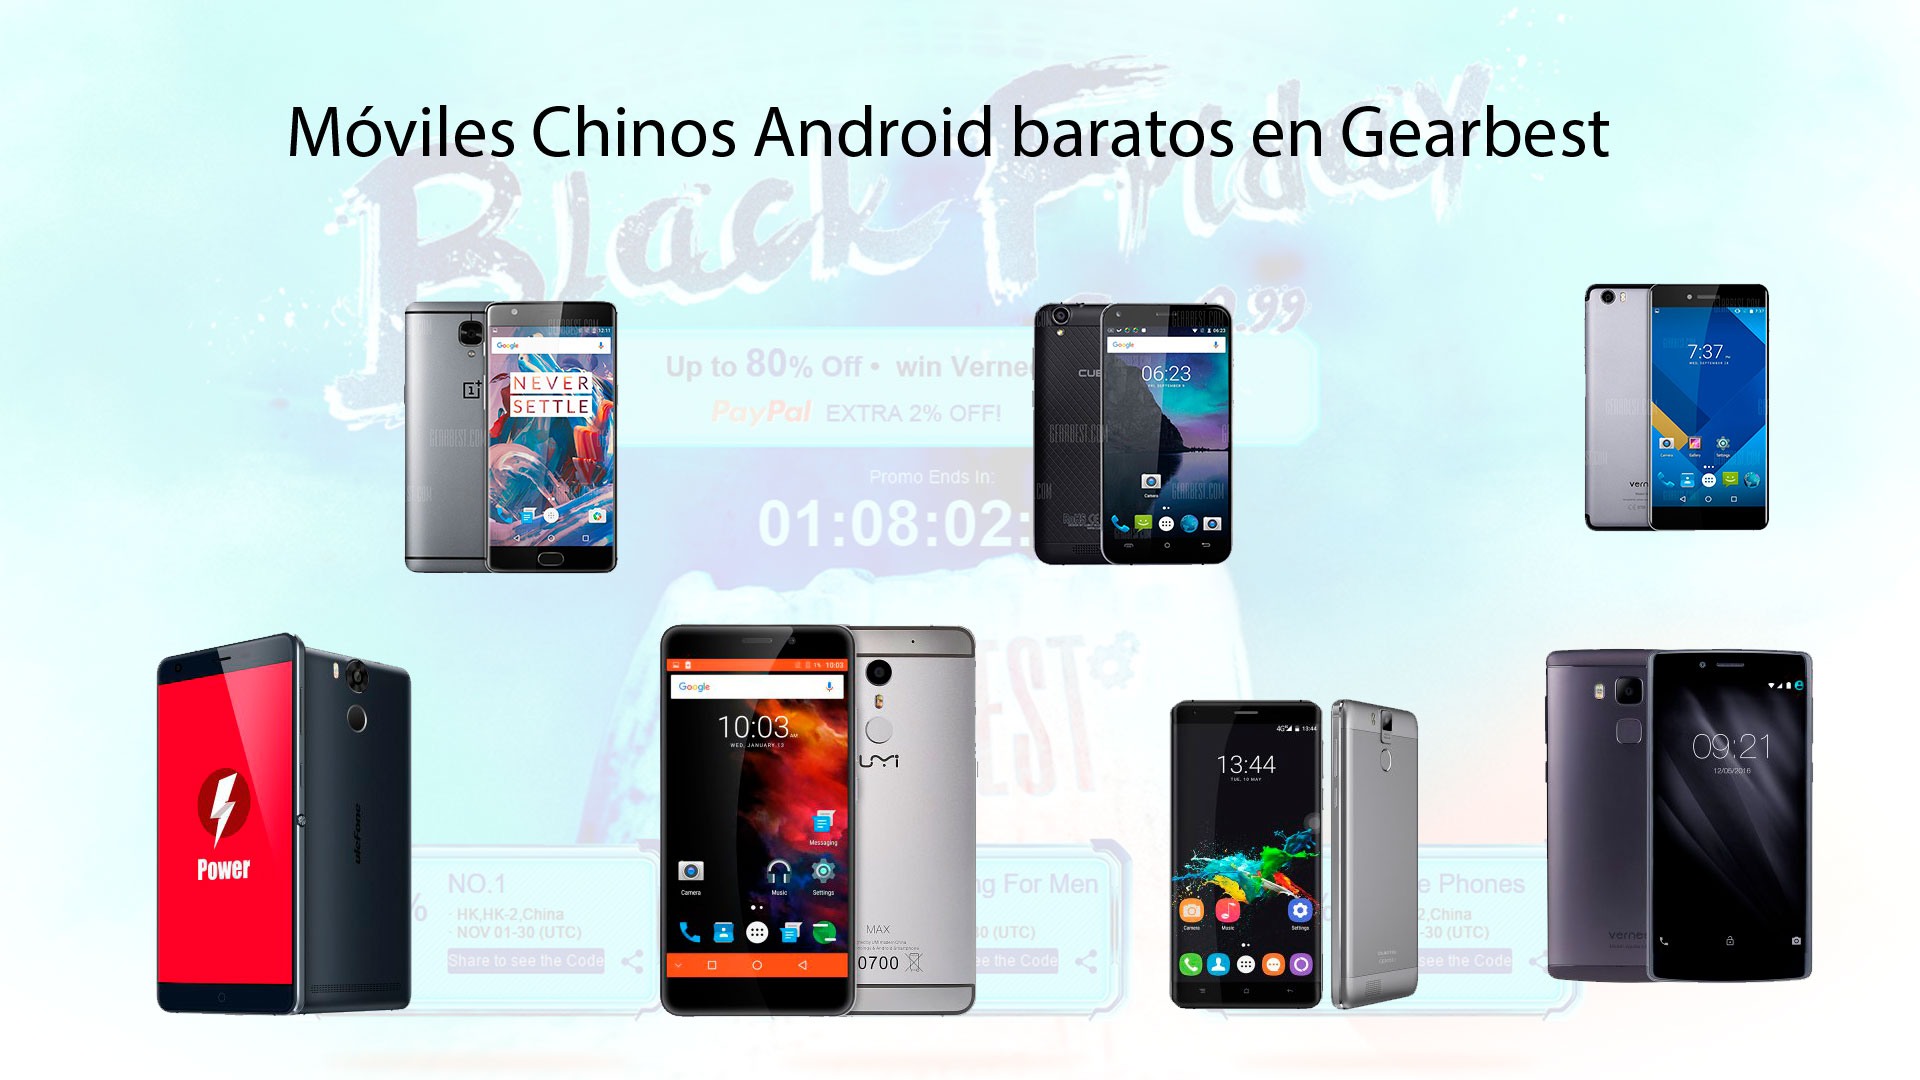 Móviles Chinos Android baratos en Gearbest